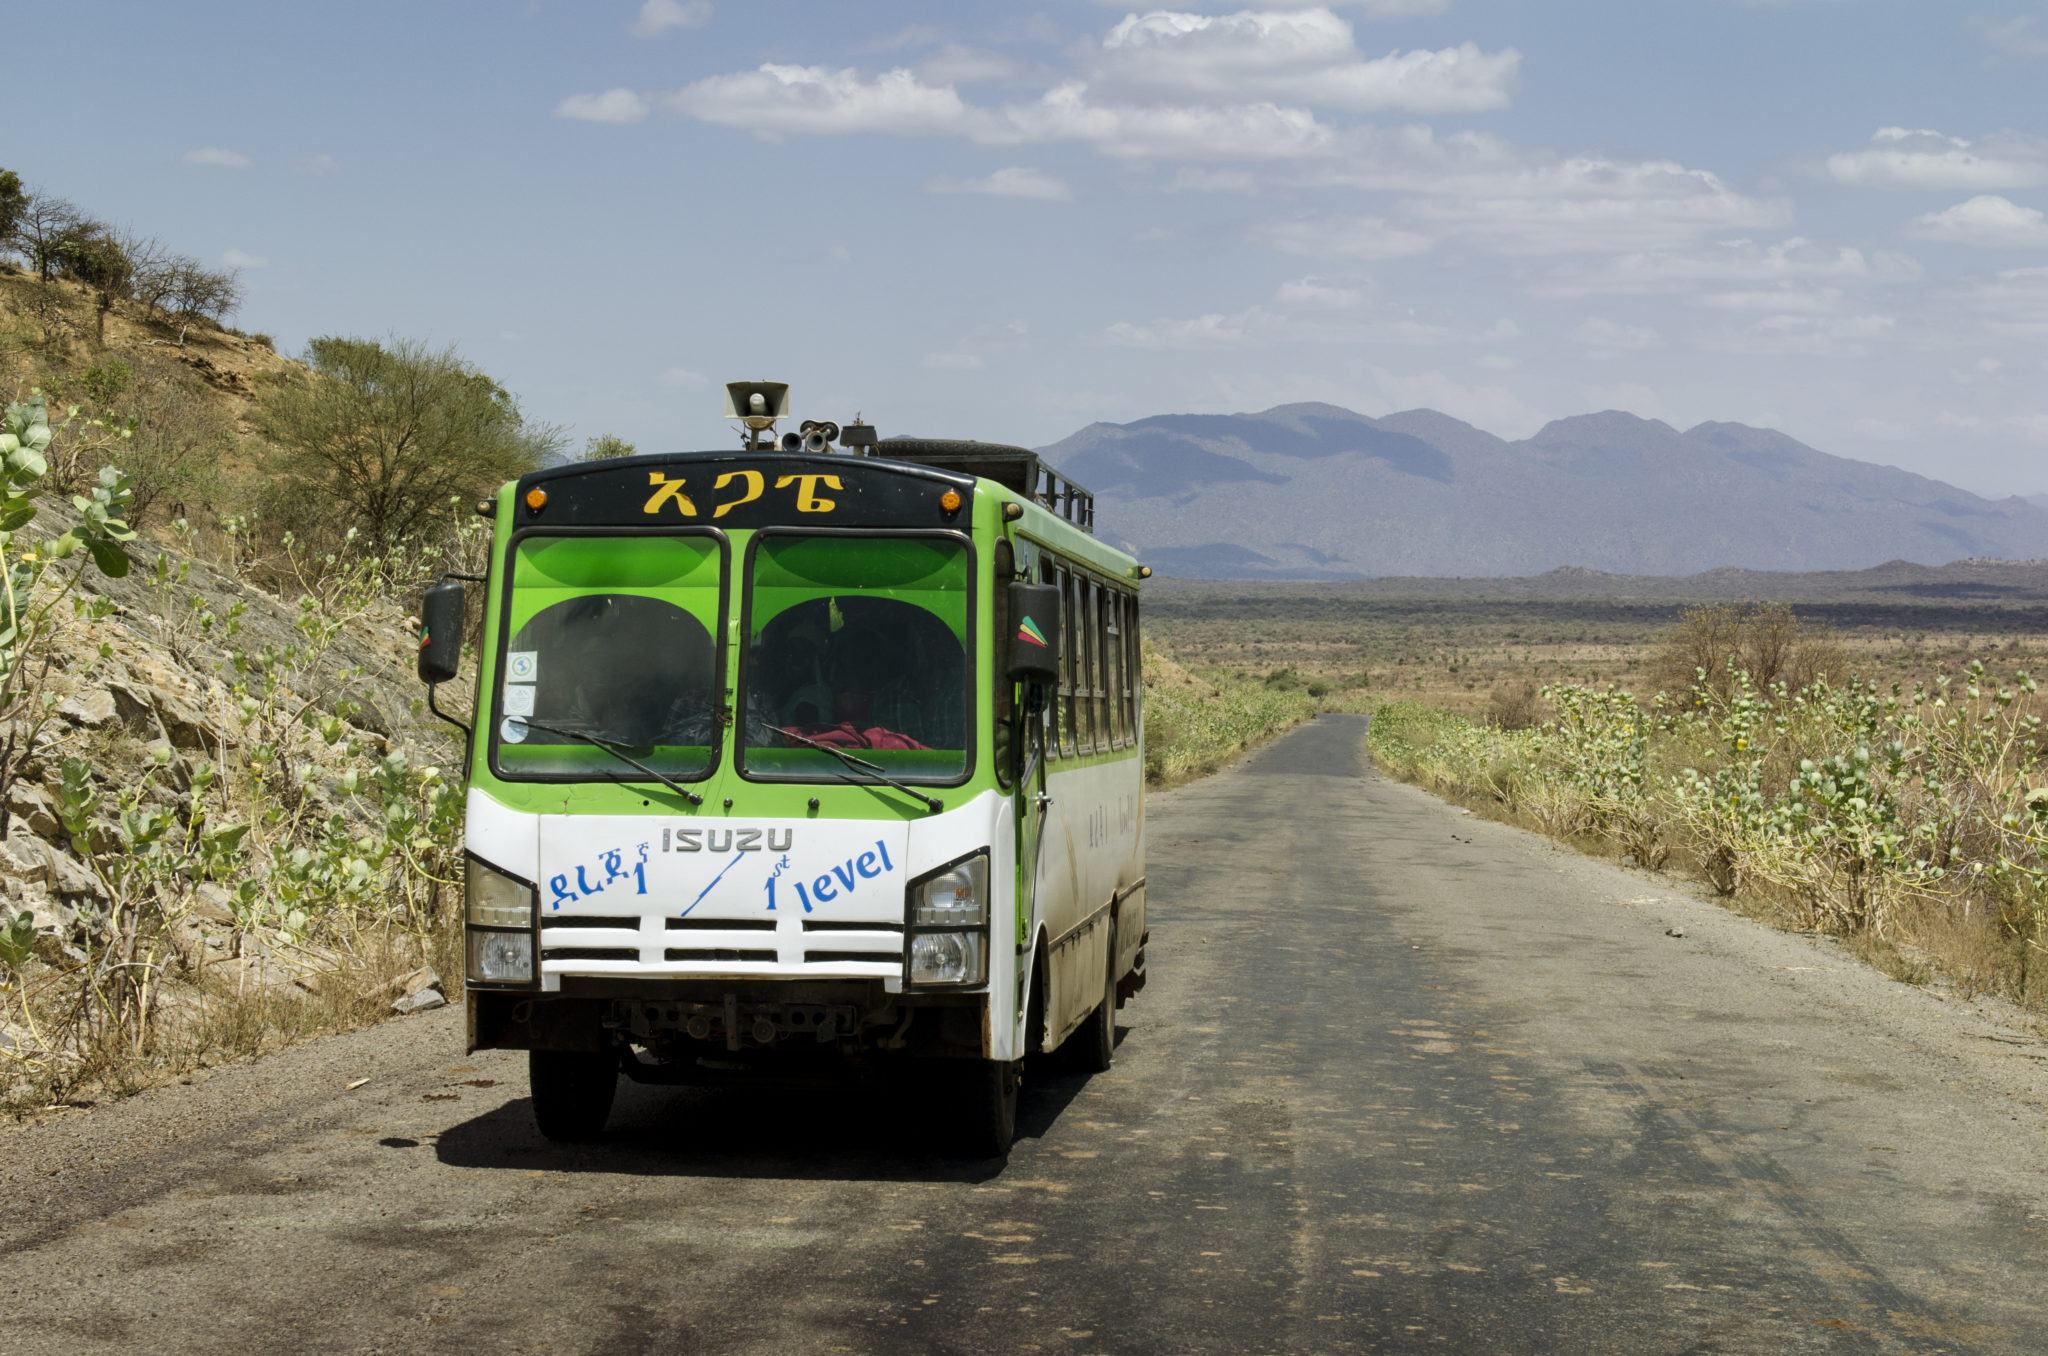 Things-to-do-in-Ethiopia-taking-the-bus